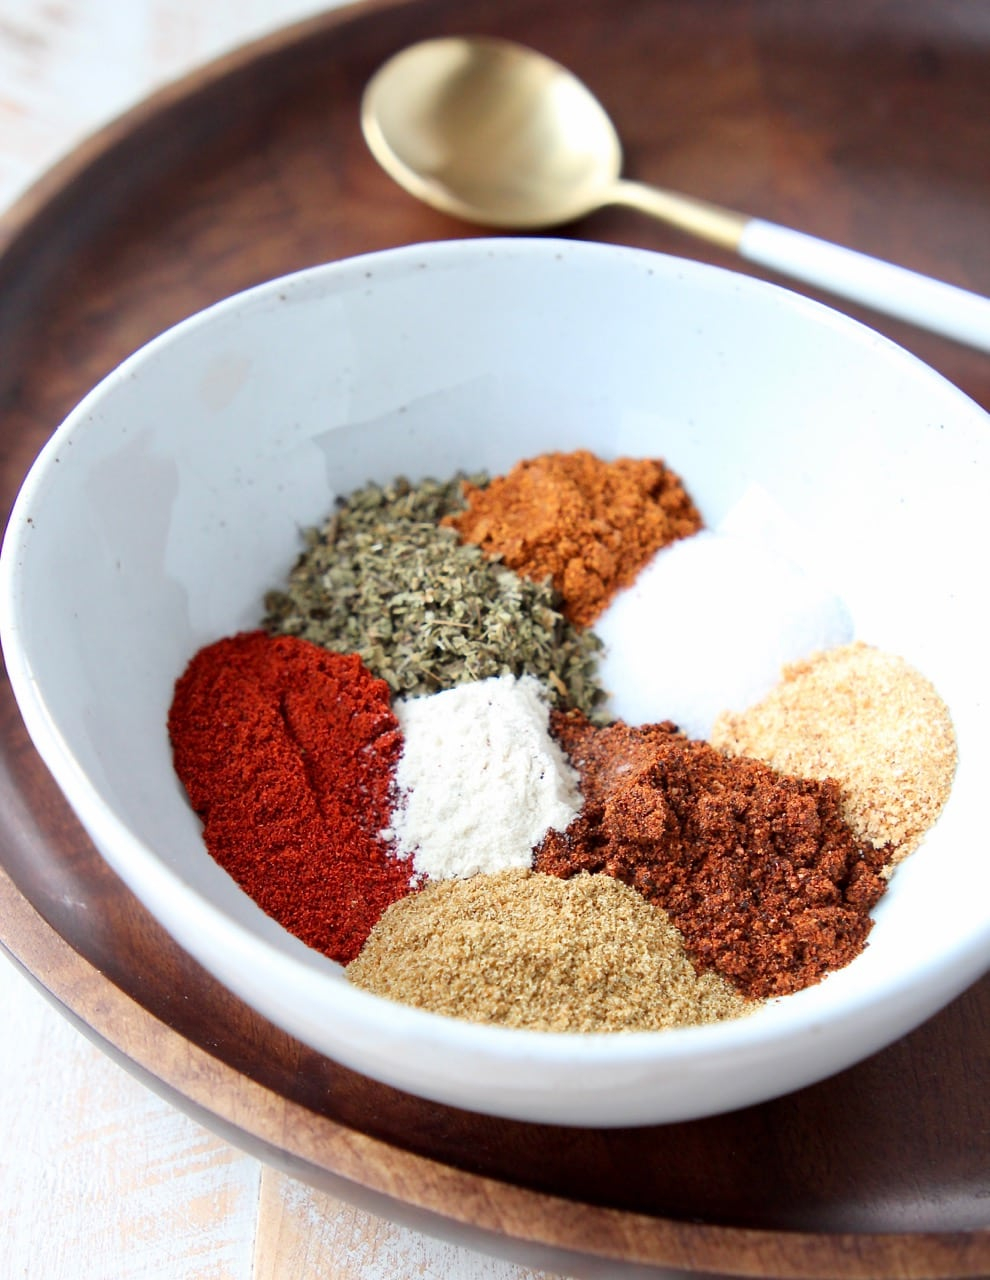 Fajita seasoning spices separated in white bowl on wood tray